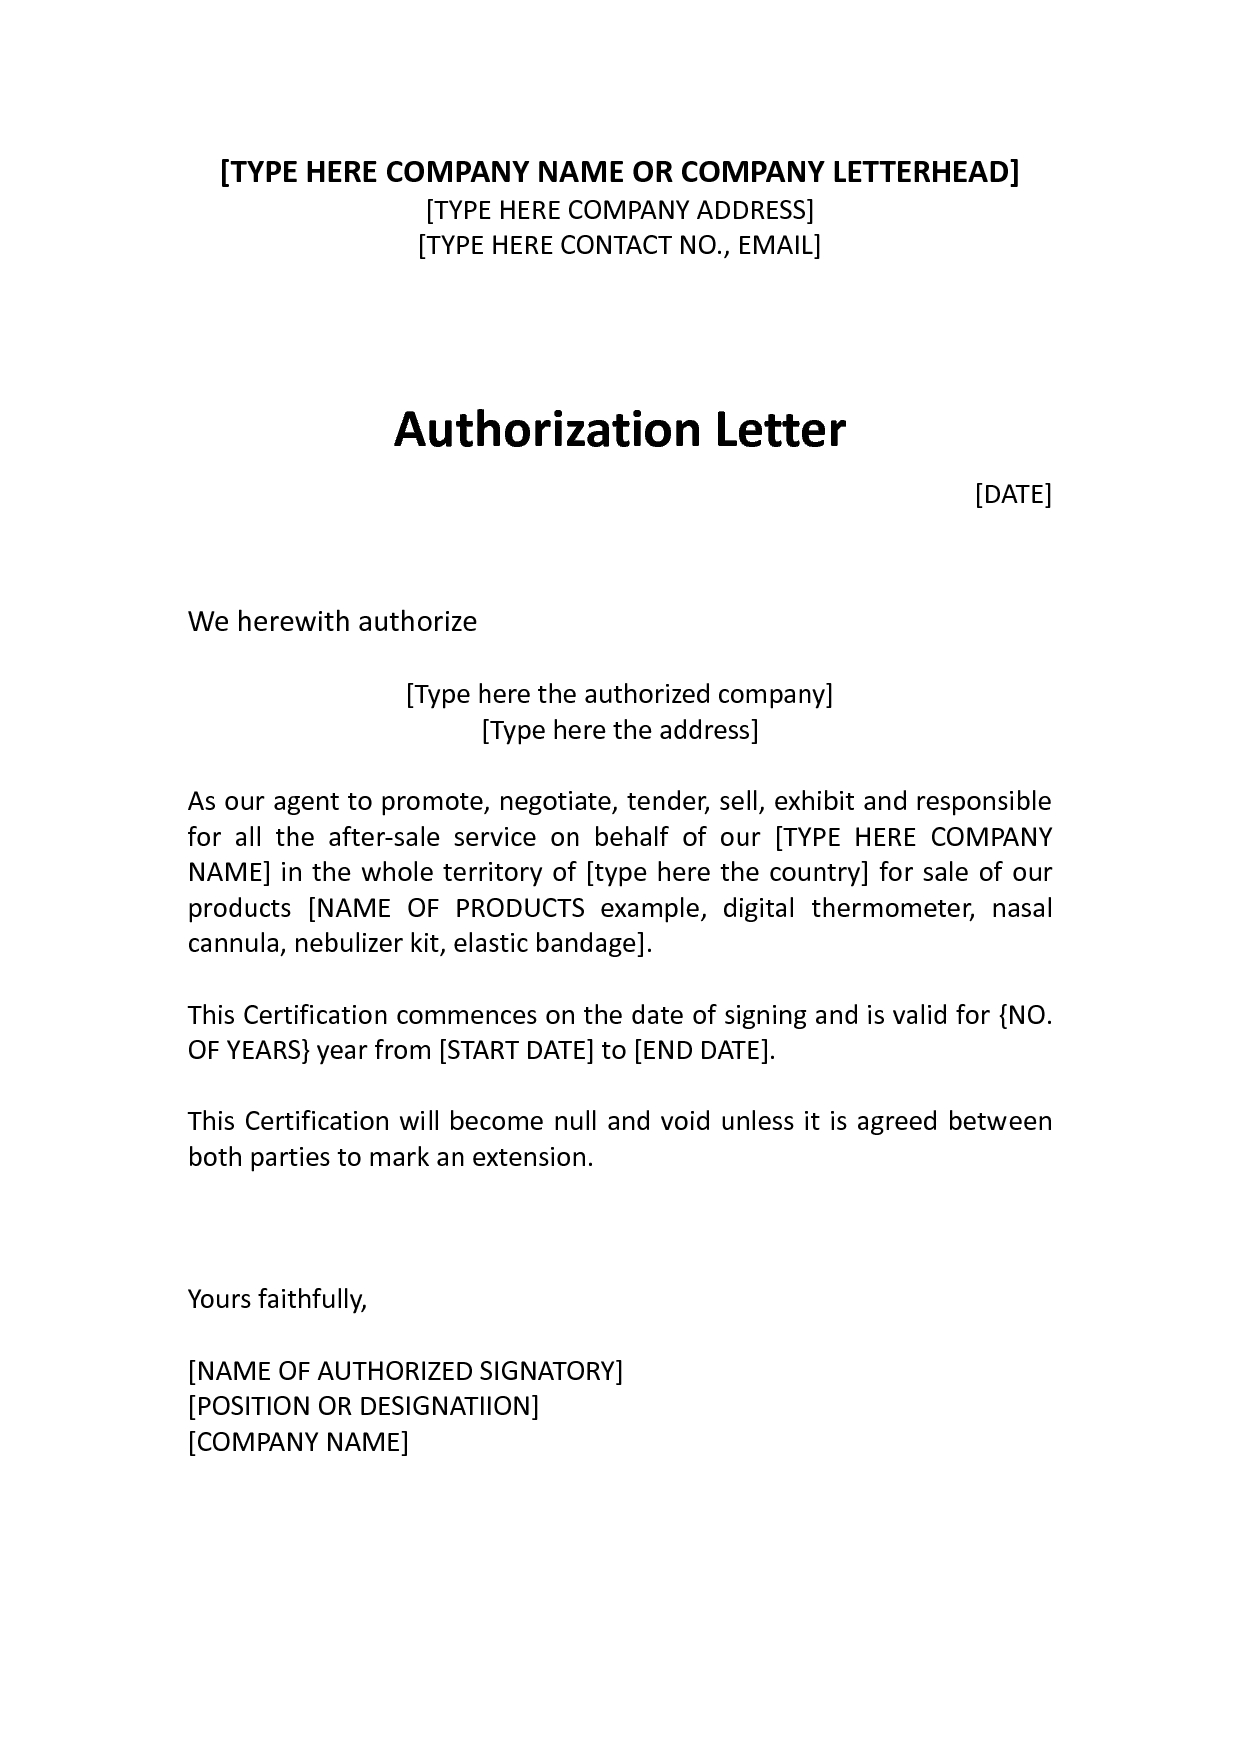 Vehicle Donation Letter Template - Authorization Distributor Letter Sample Distributor Dealer